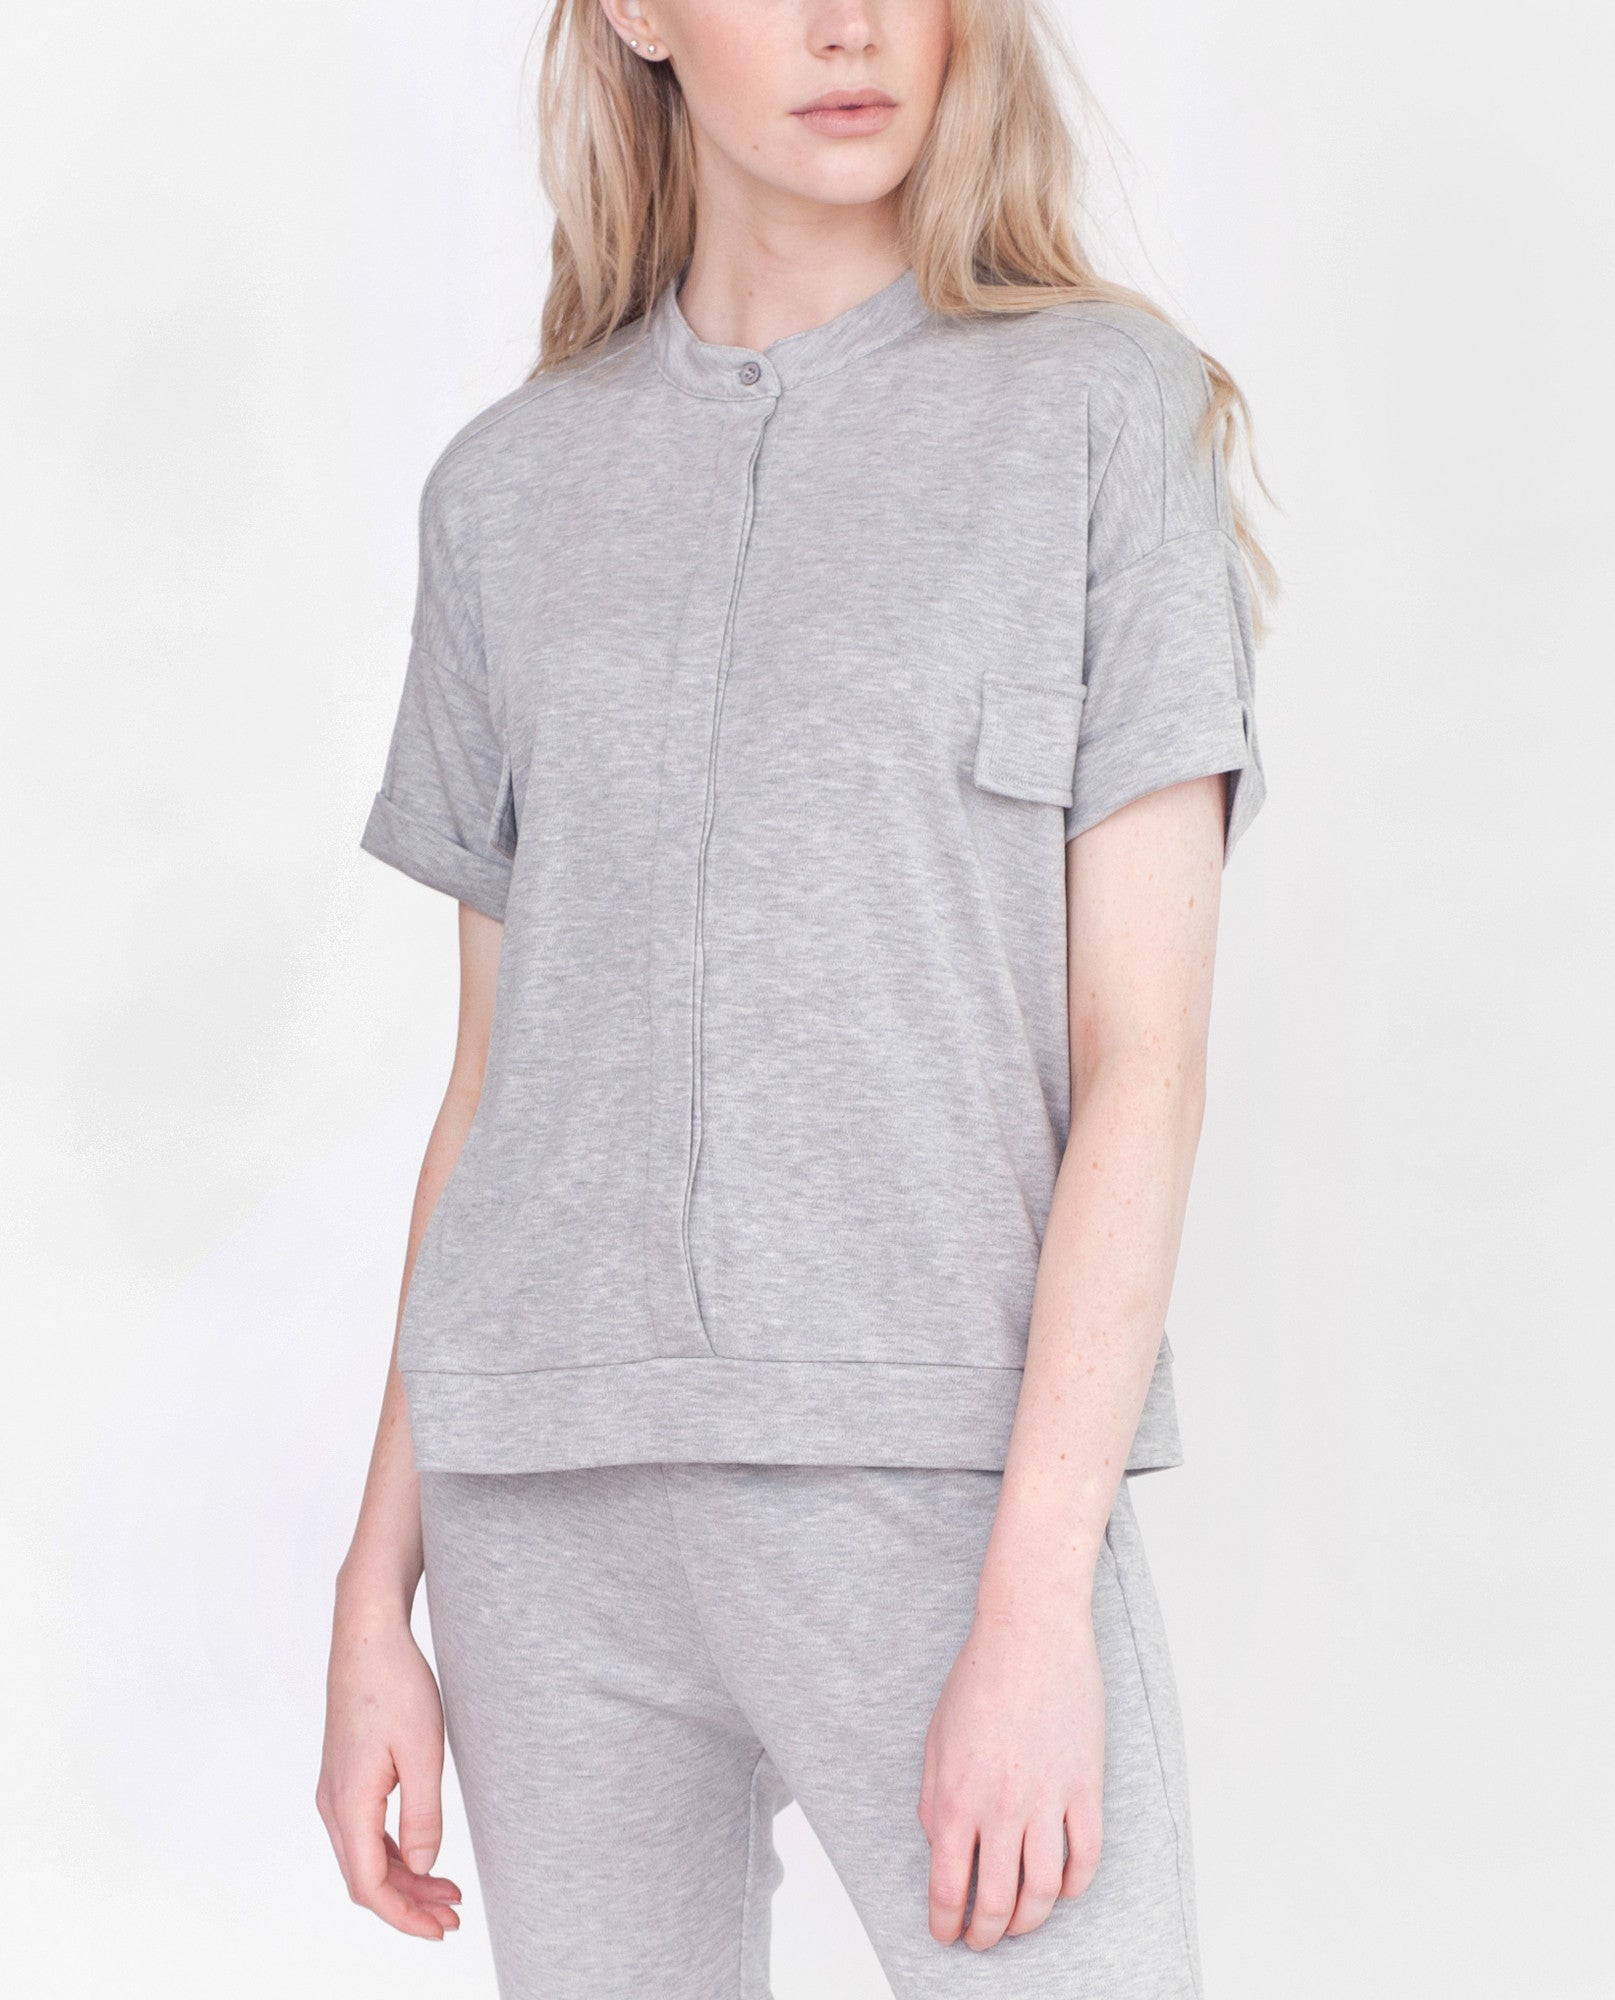 VIOLET Lyocell And Cotton Shirt In Light Grey